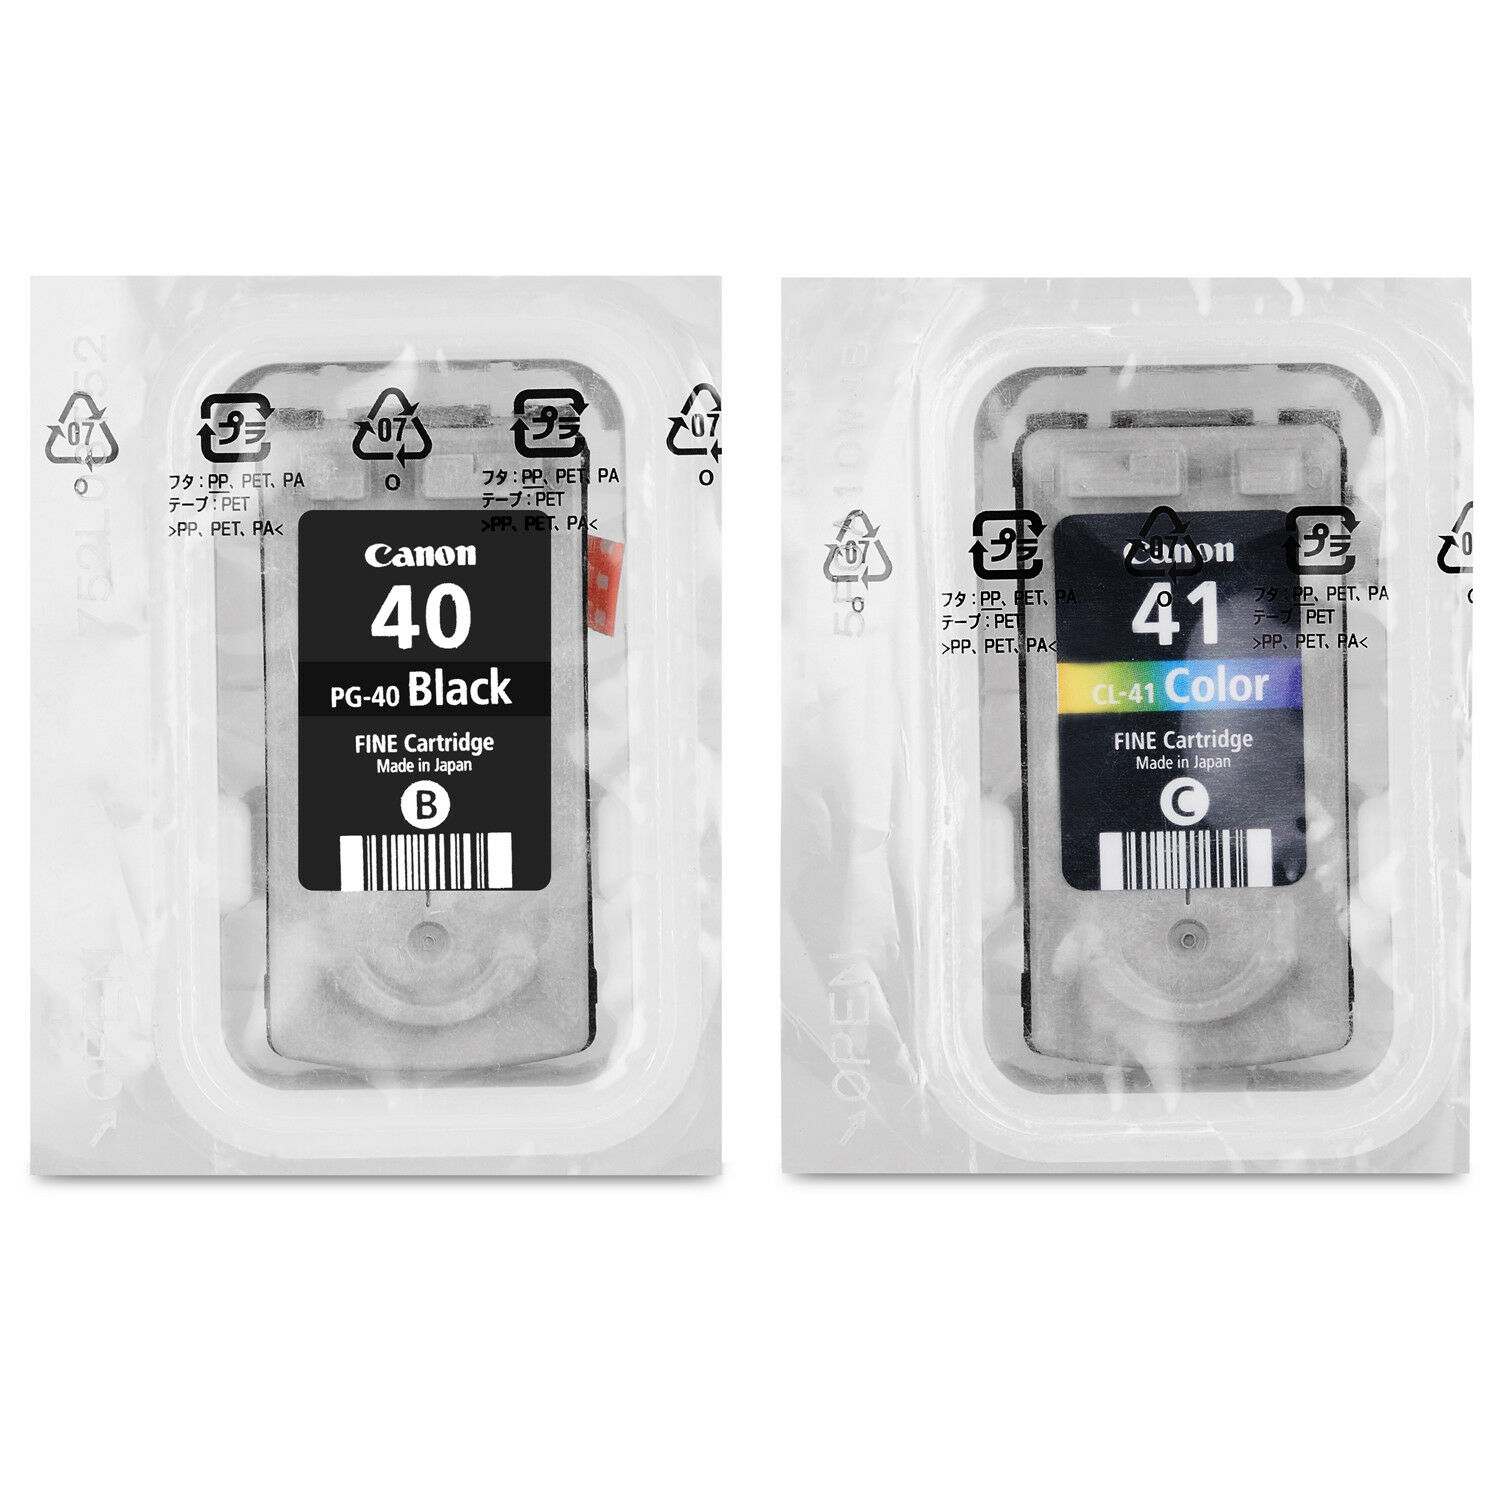 Canon Pg 40 And Cl 41 Ink Cartridge Set 2day Delivery Ebay Colour Original Norton Secured Powered By Verisign